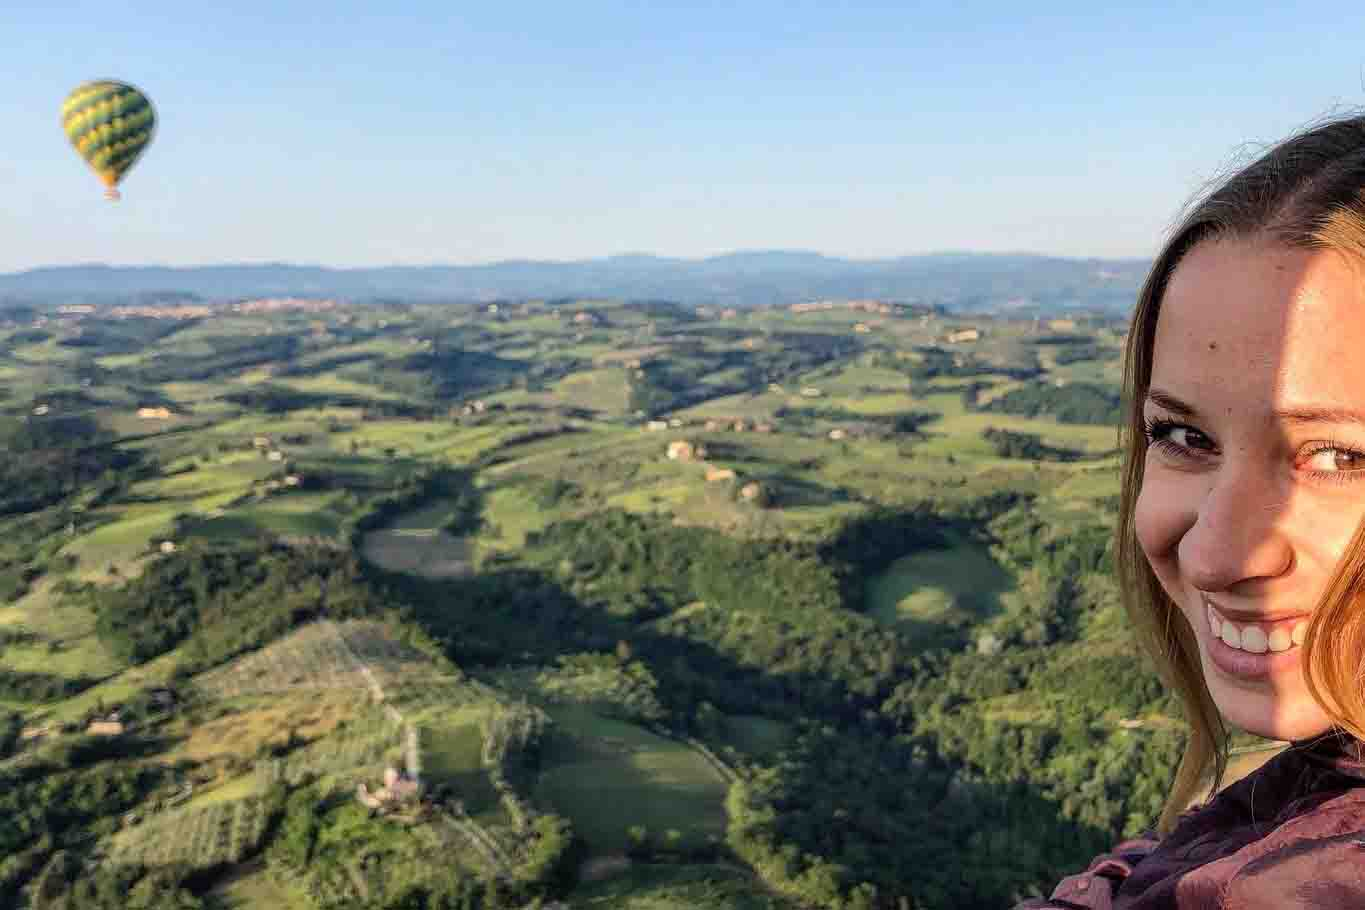 Le Mongolfiere in toscana